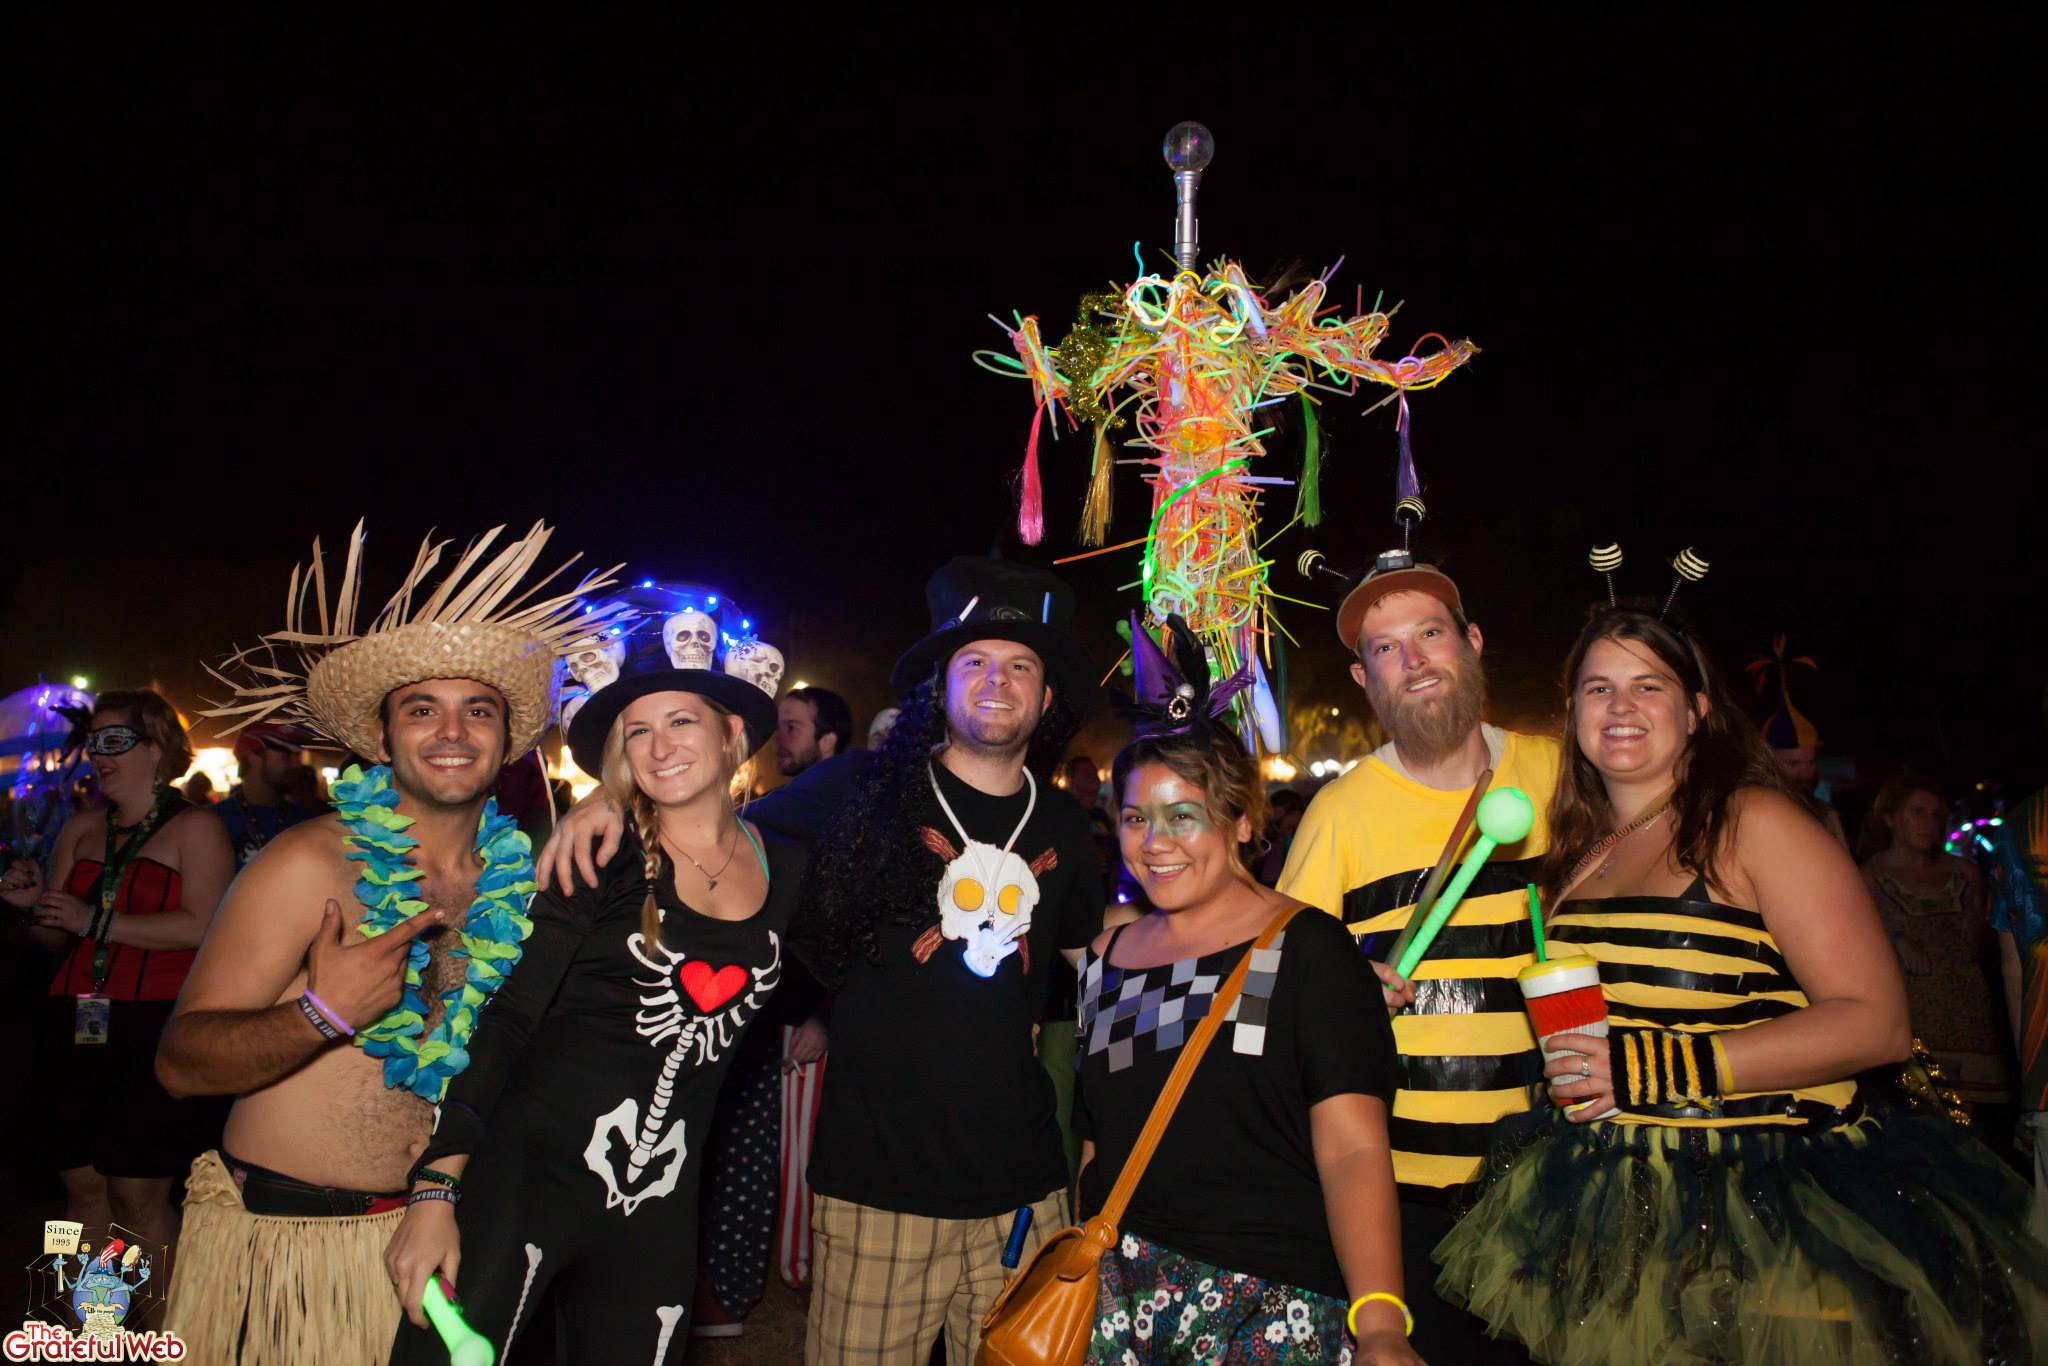 Suwannee Hulaween 2013 | Review and Photos